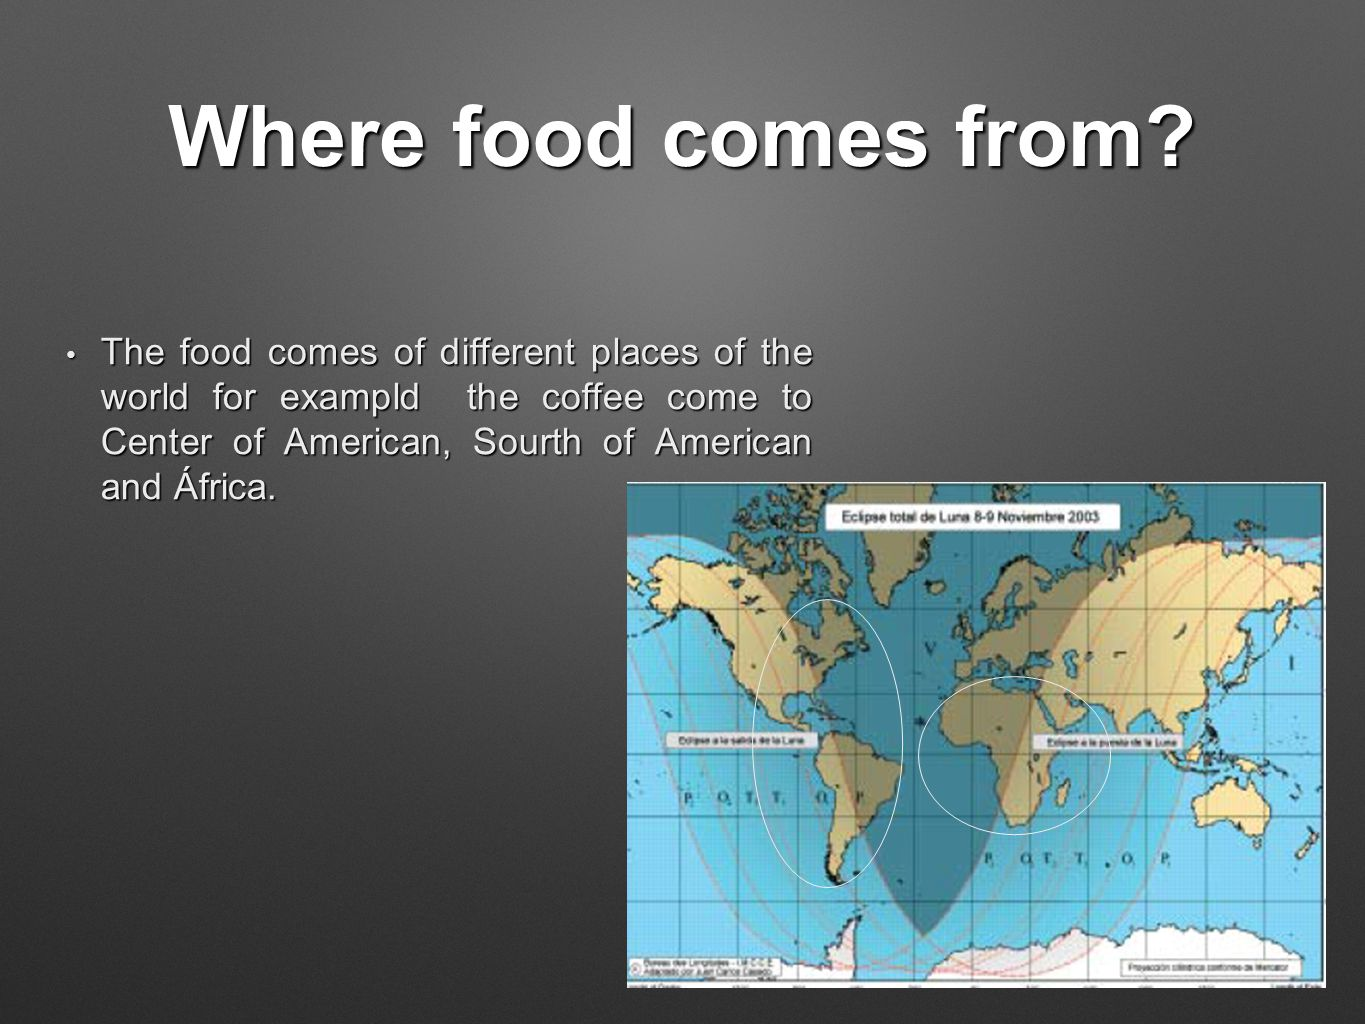 Where food comes from.